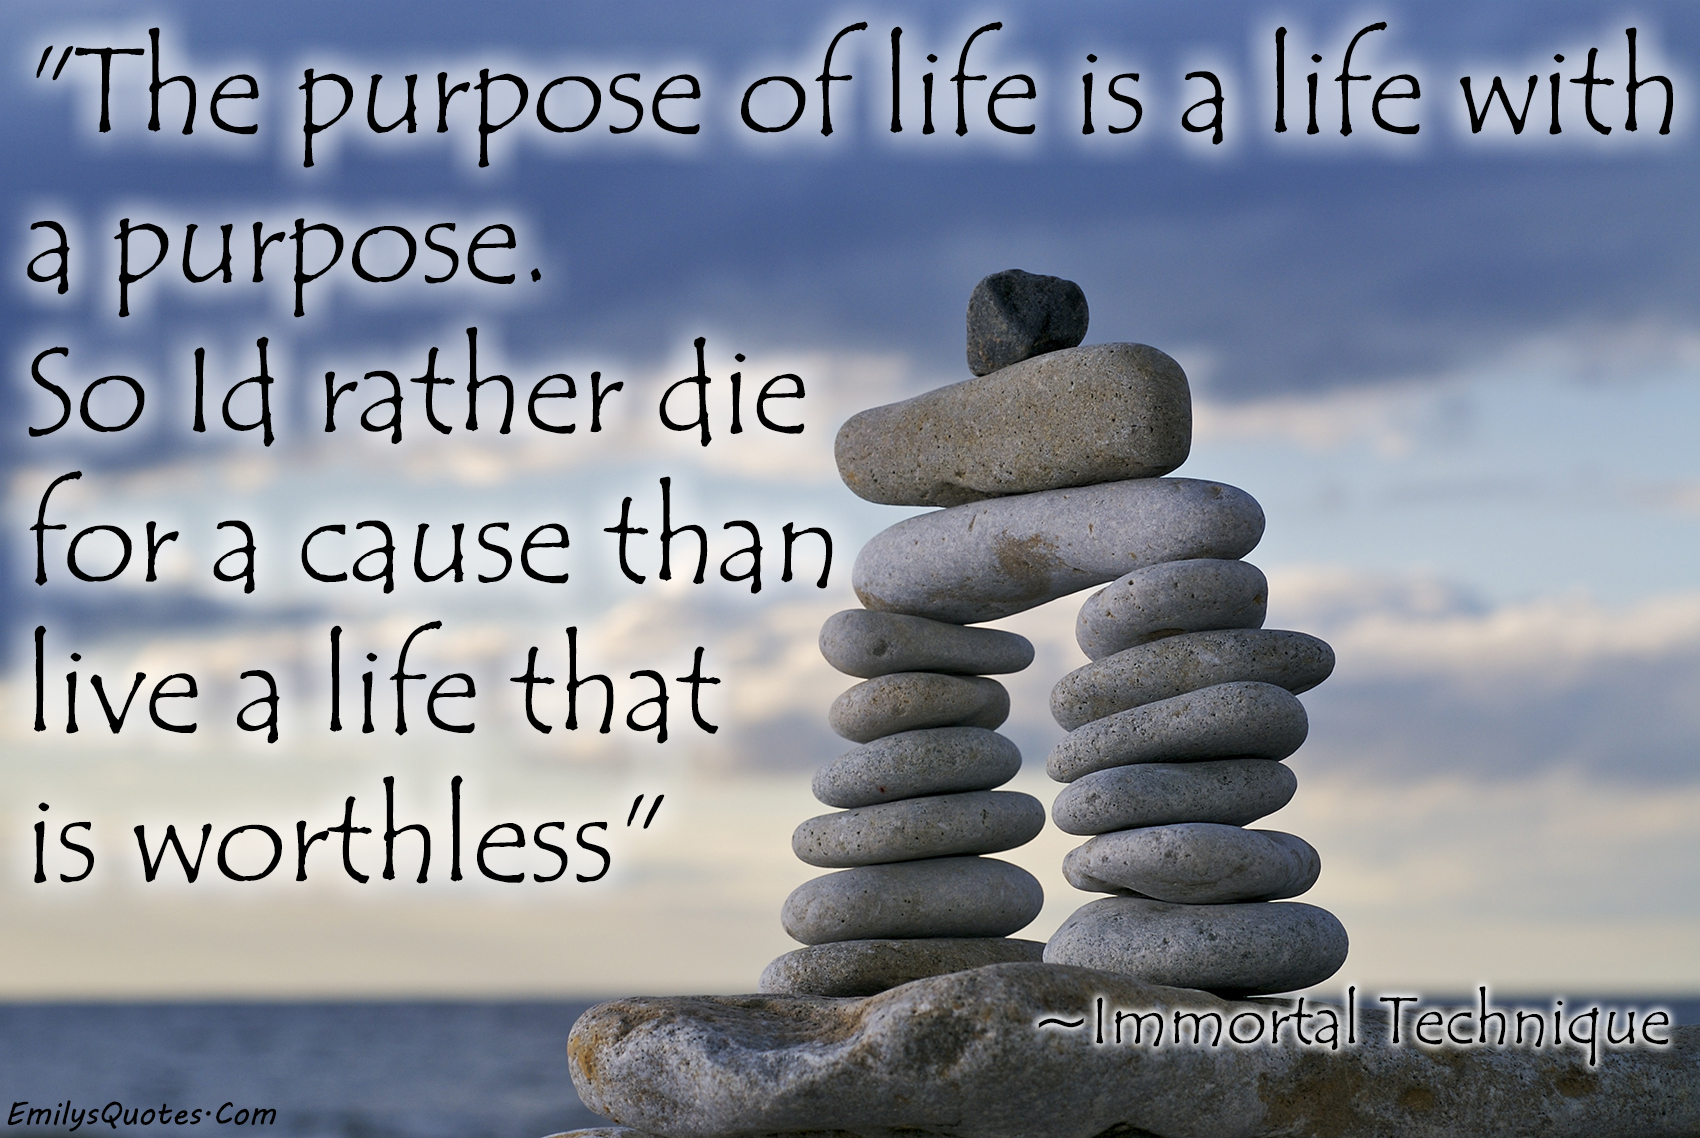 Life Quotes Inspiration The Purpose Of Life Is A Life With A Purposeso I'd Rather Die